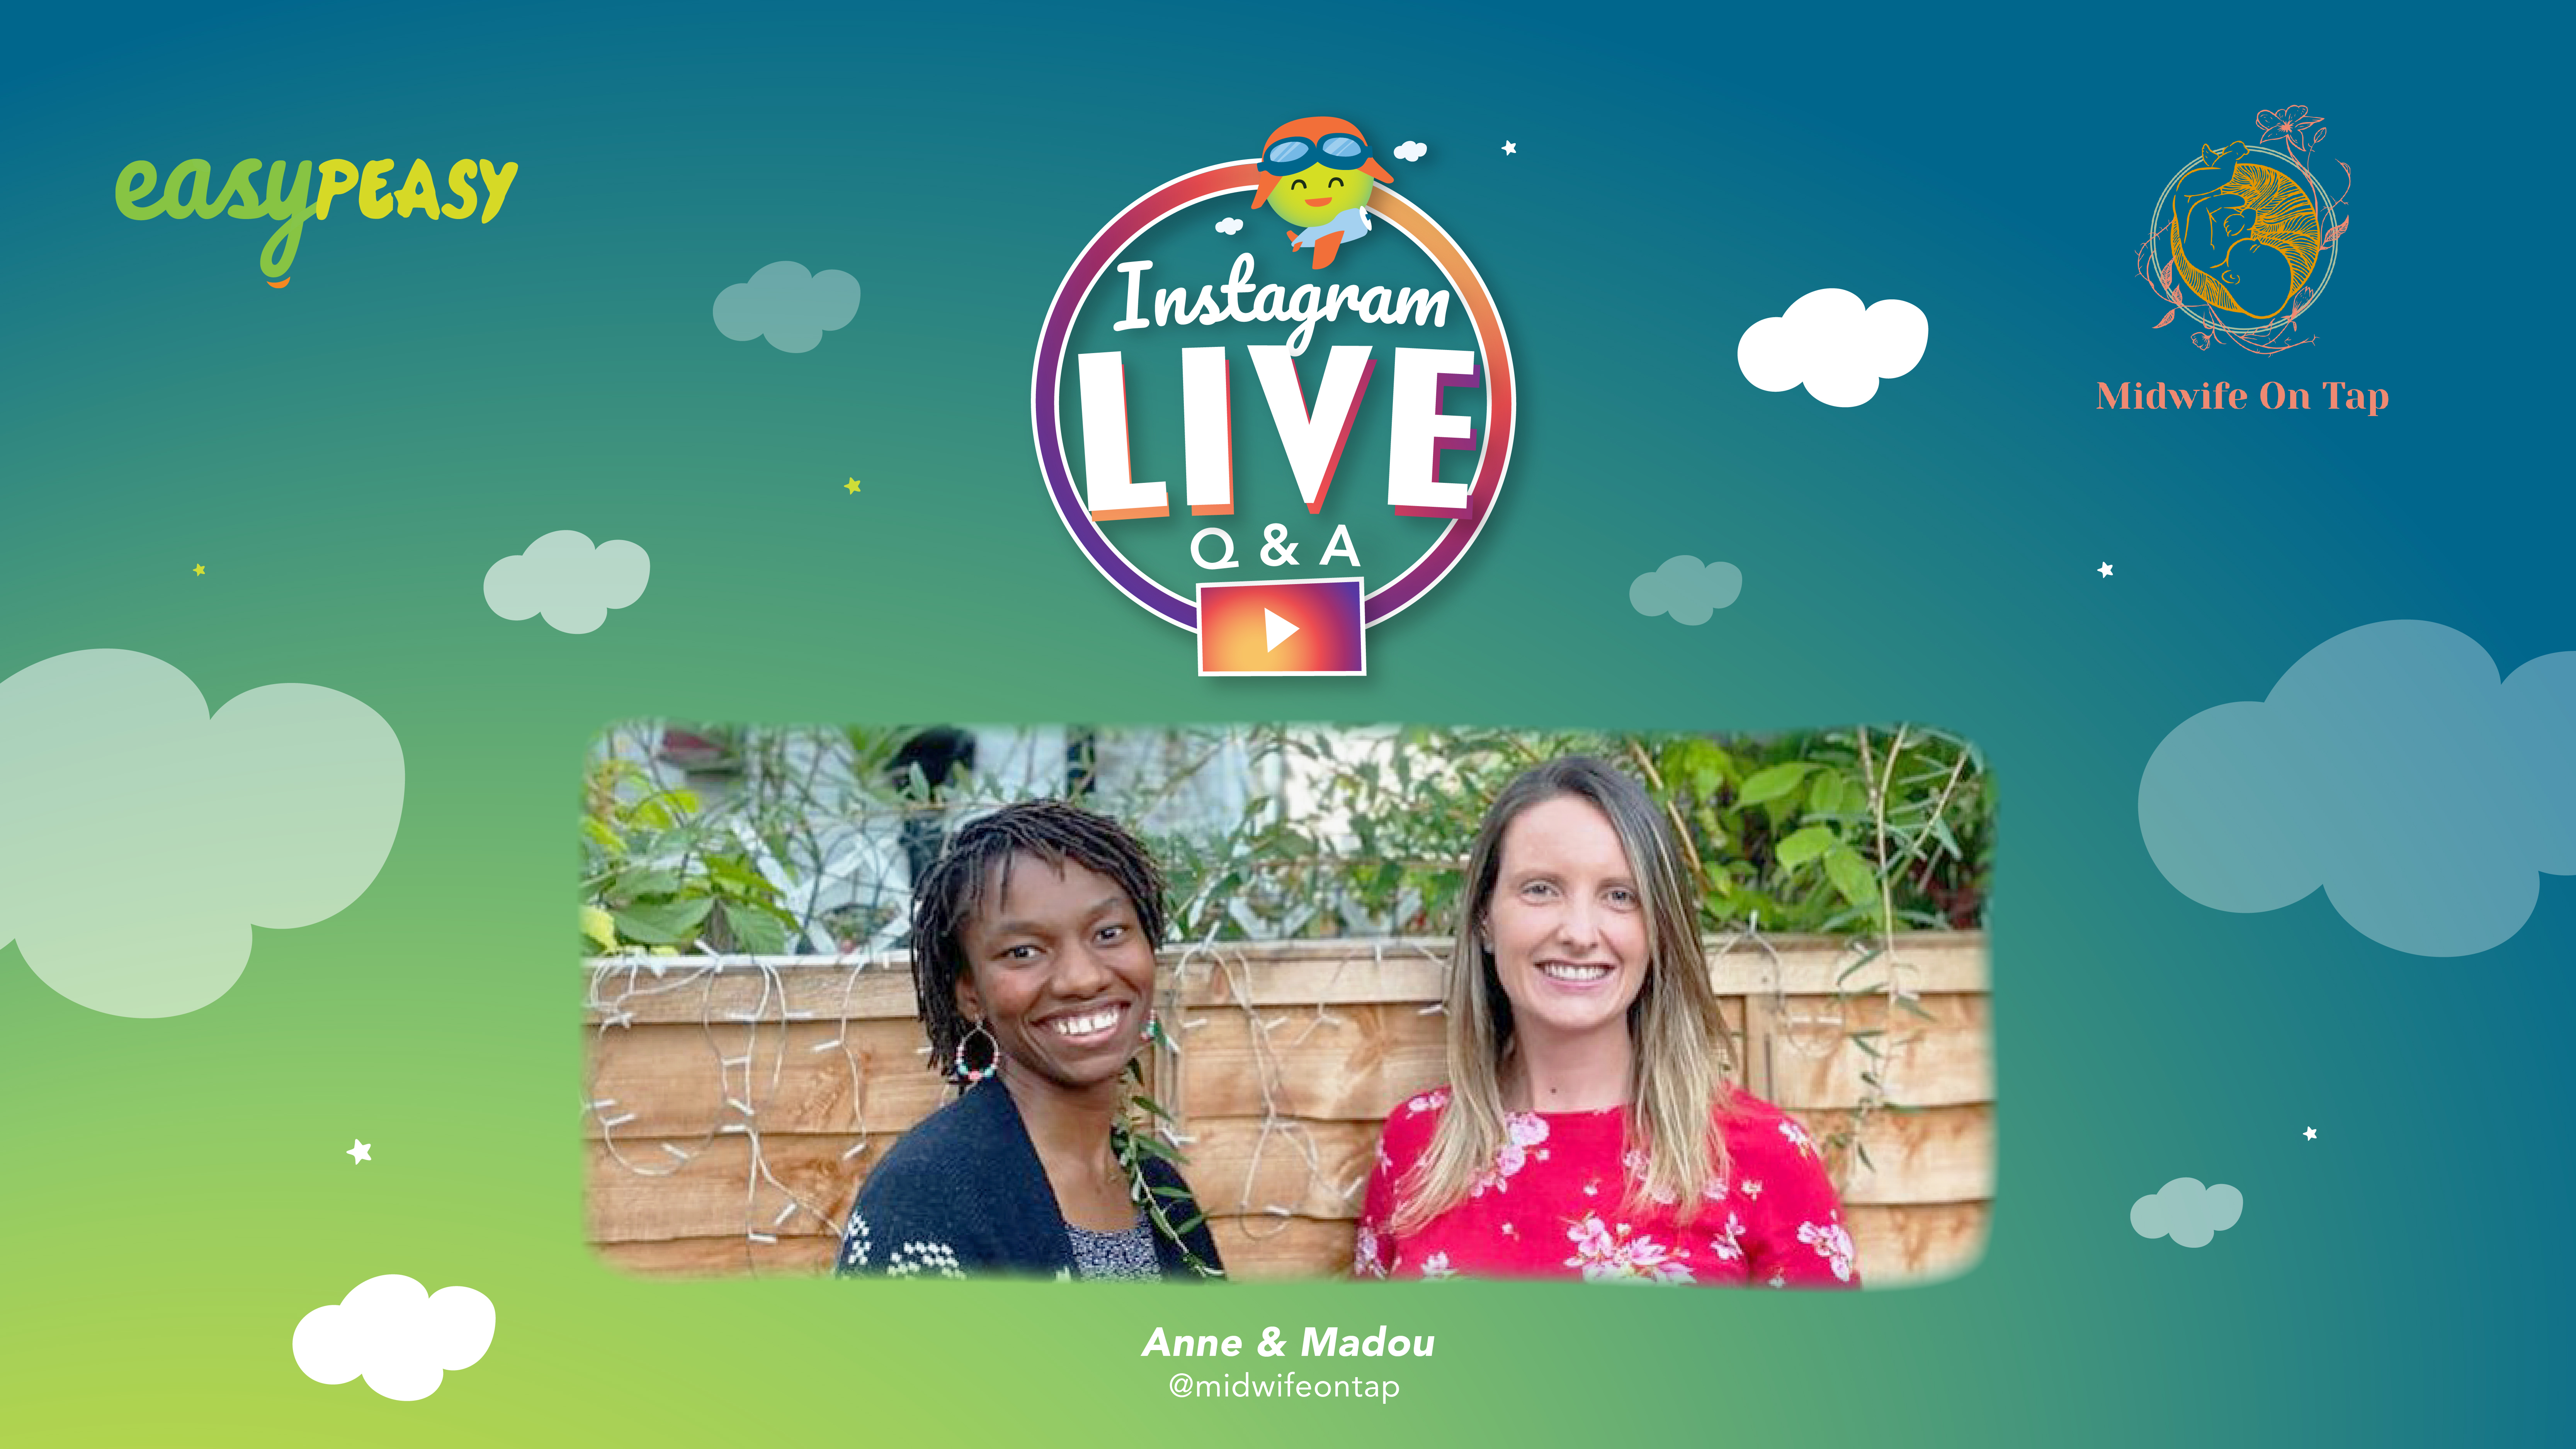 Insta Live Q&A with Midwife On Tap